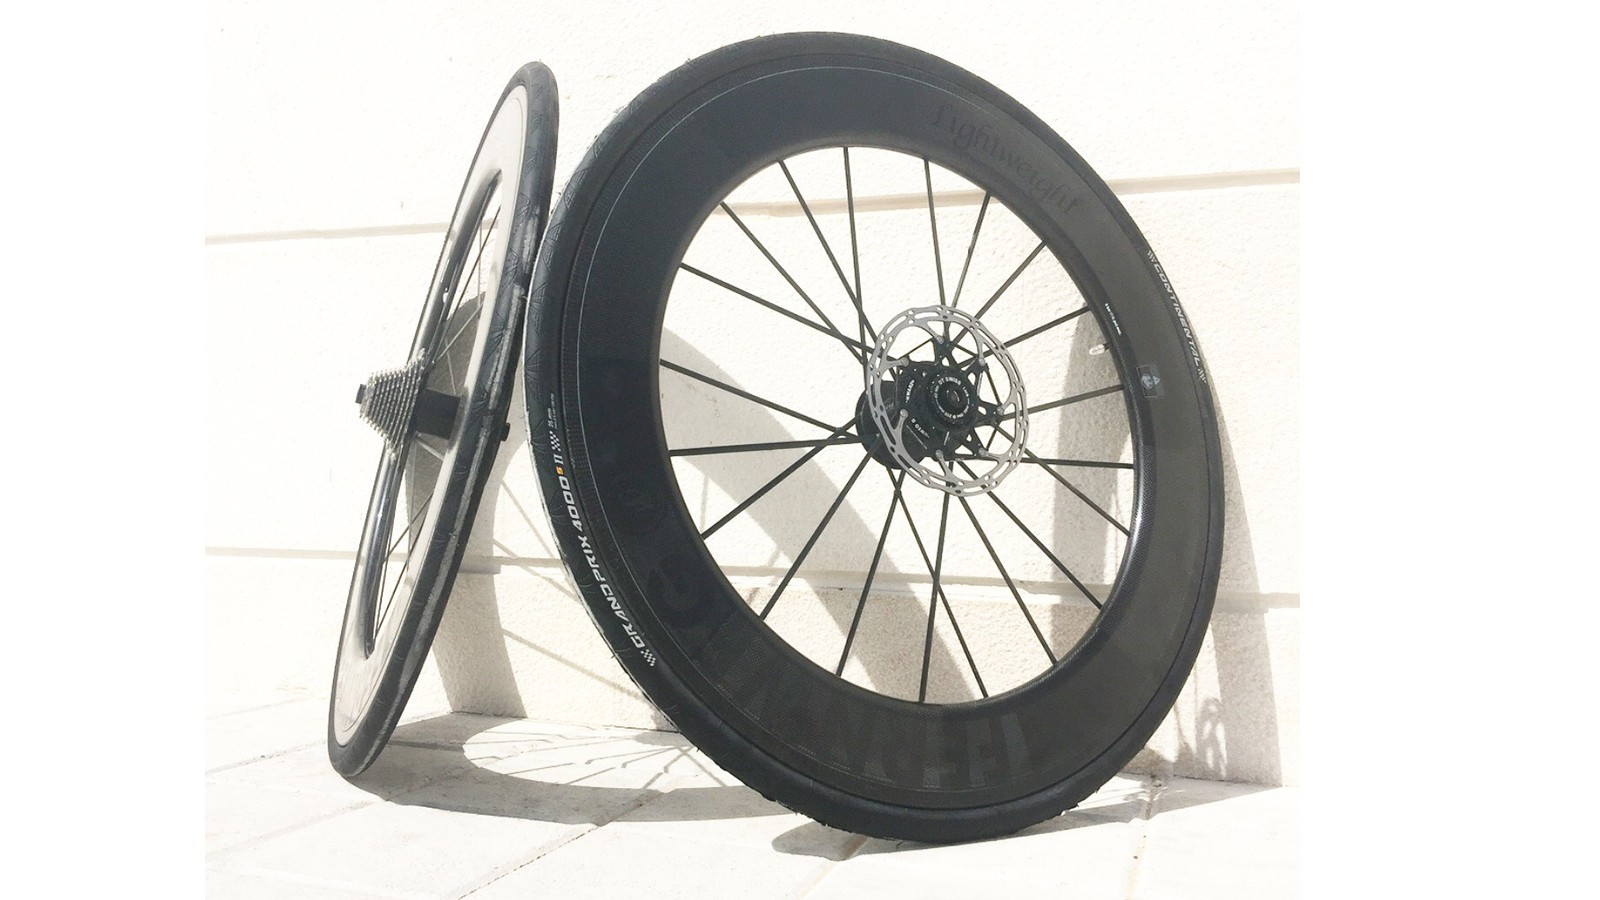 Retailing for a casual £5,975 (international pricing TBC) the Fernweg disc is Lightweight's most expensive disc brake wheelset